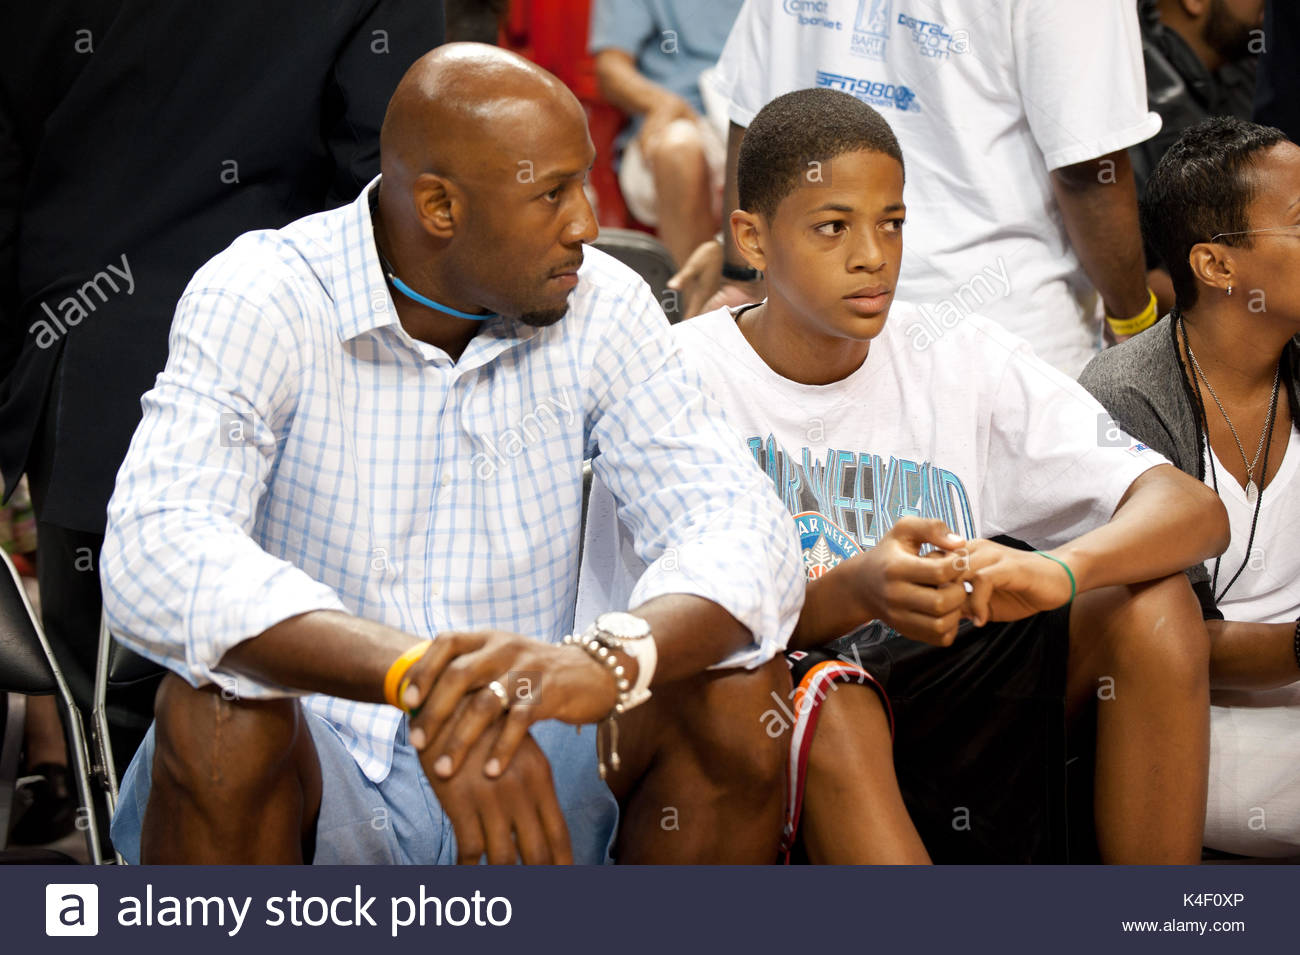 Alonzo Mourning Basketball Stock s & Alonzo Mourning